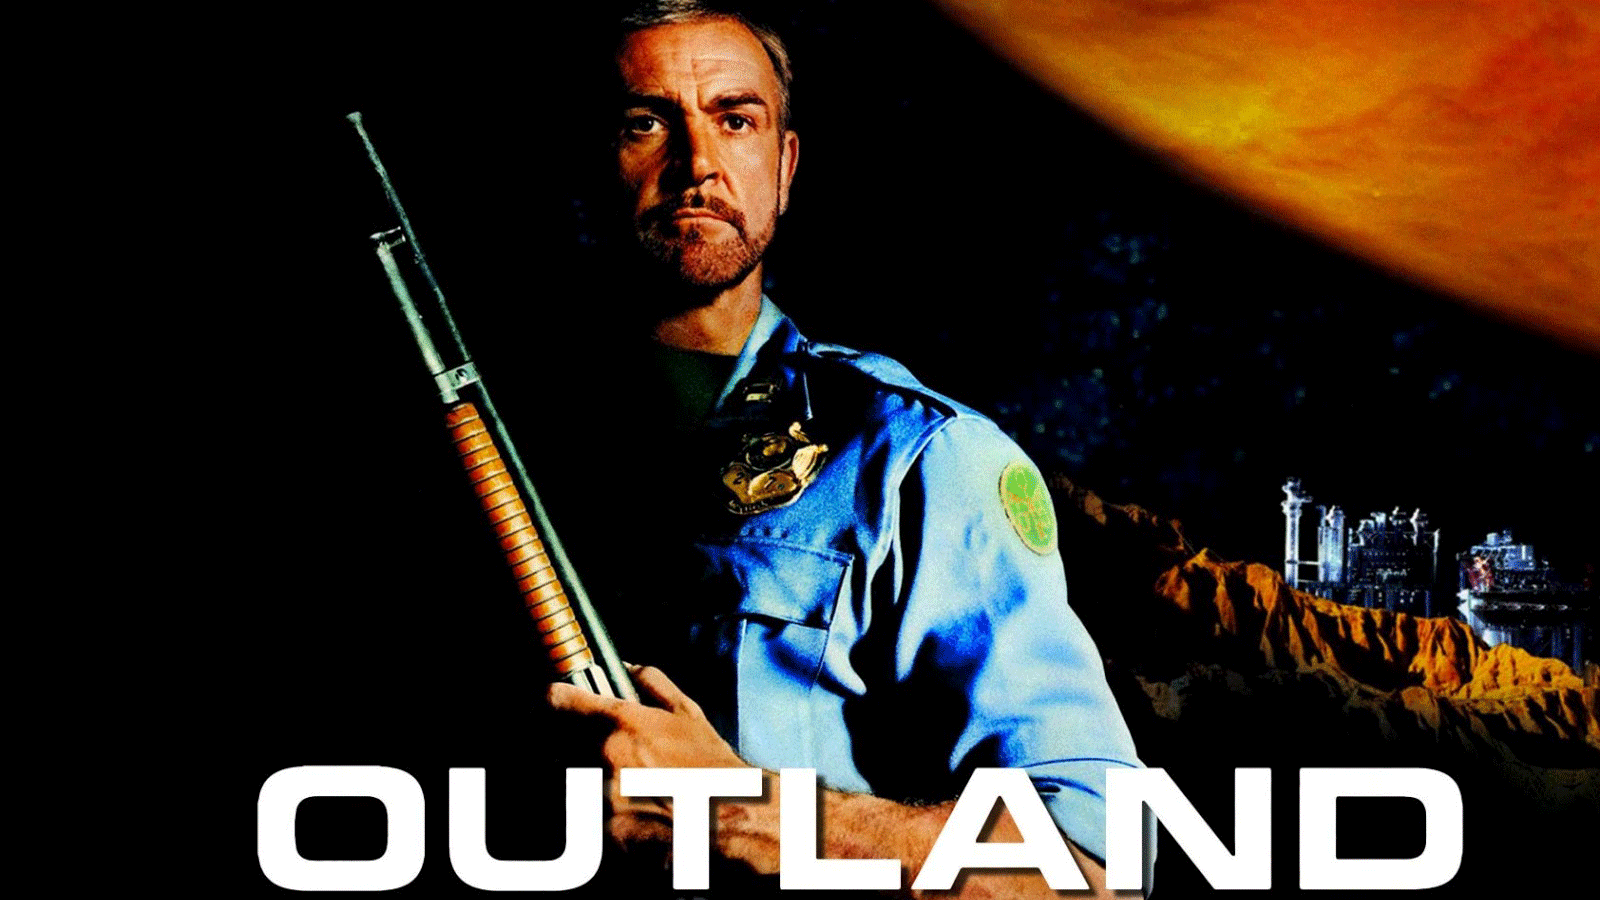 Outland ISTYA movie review